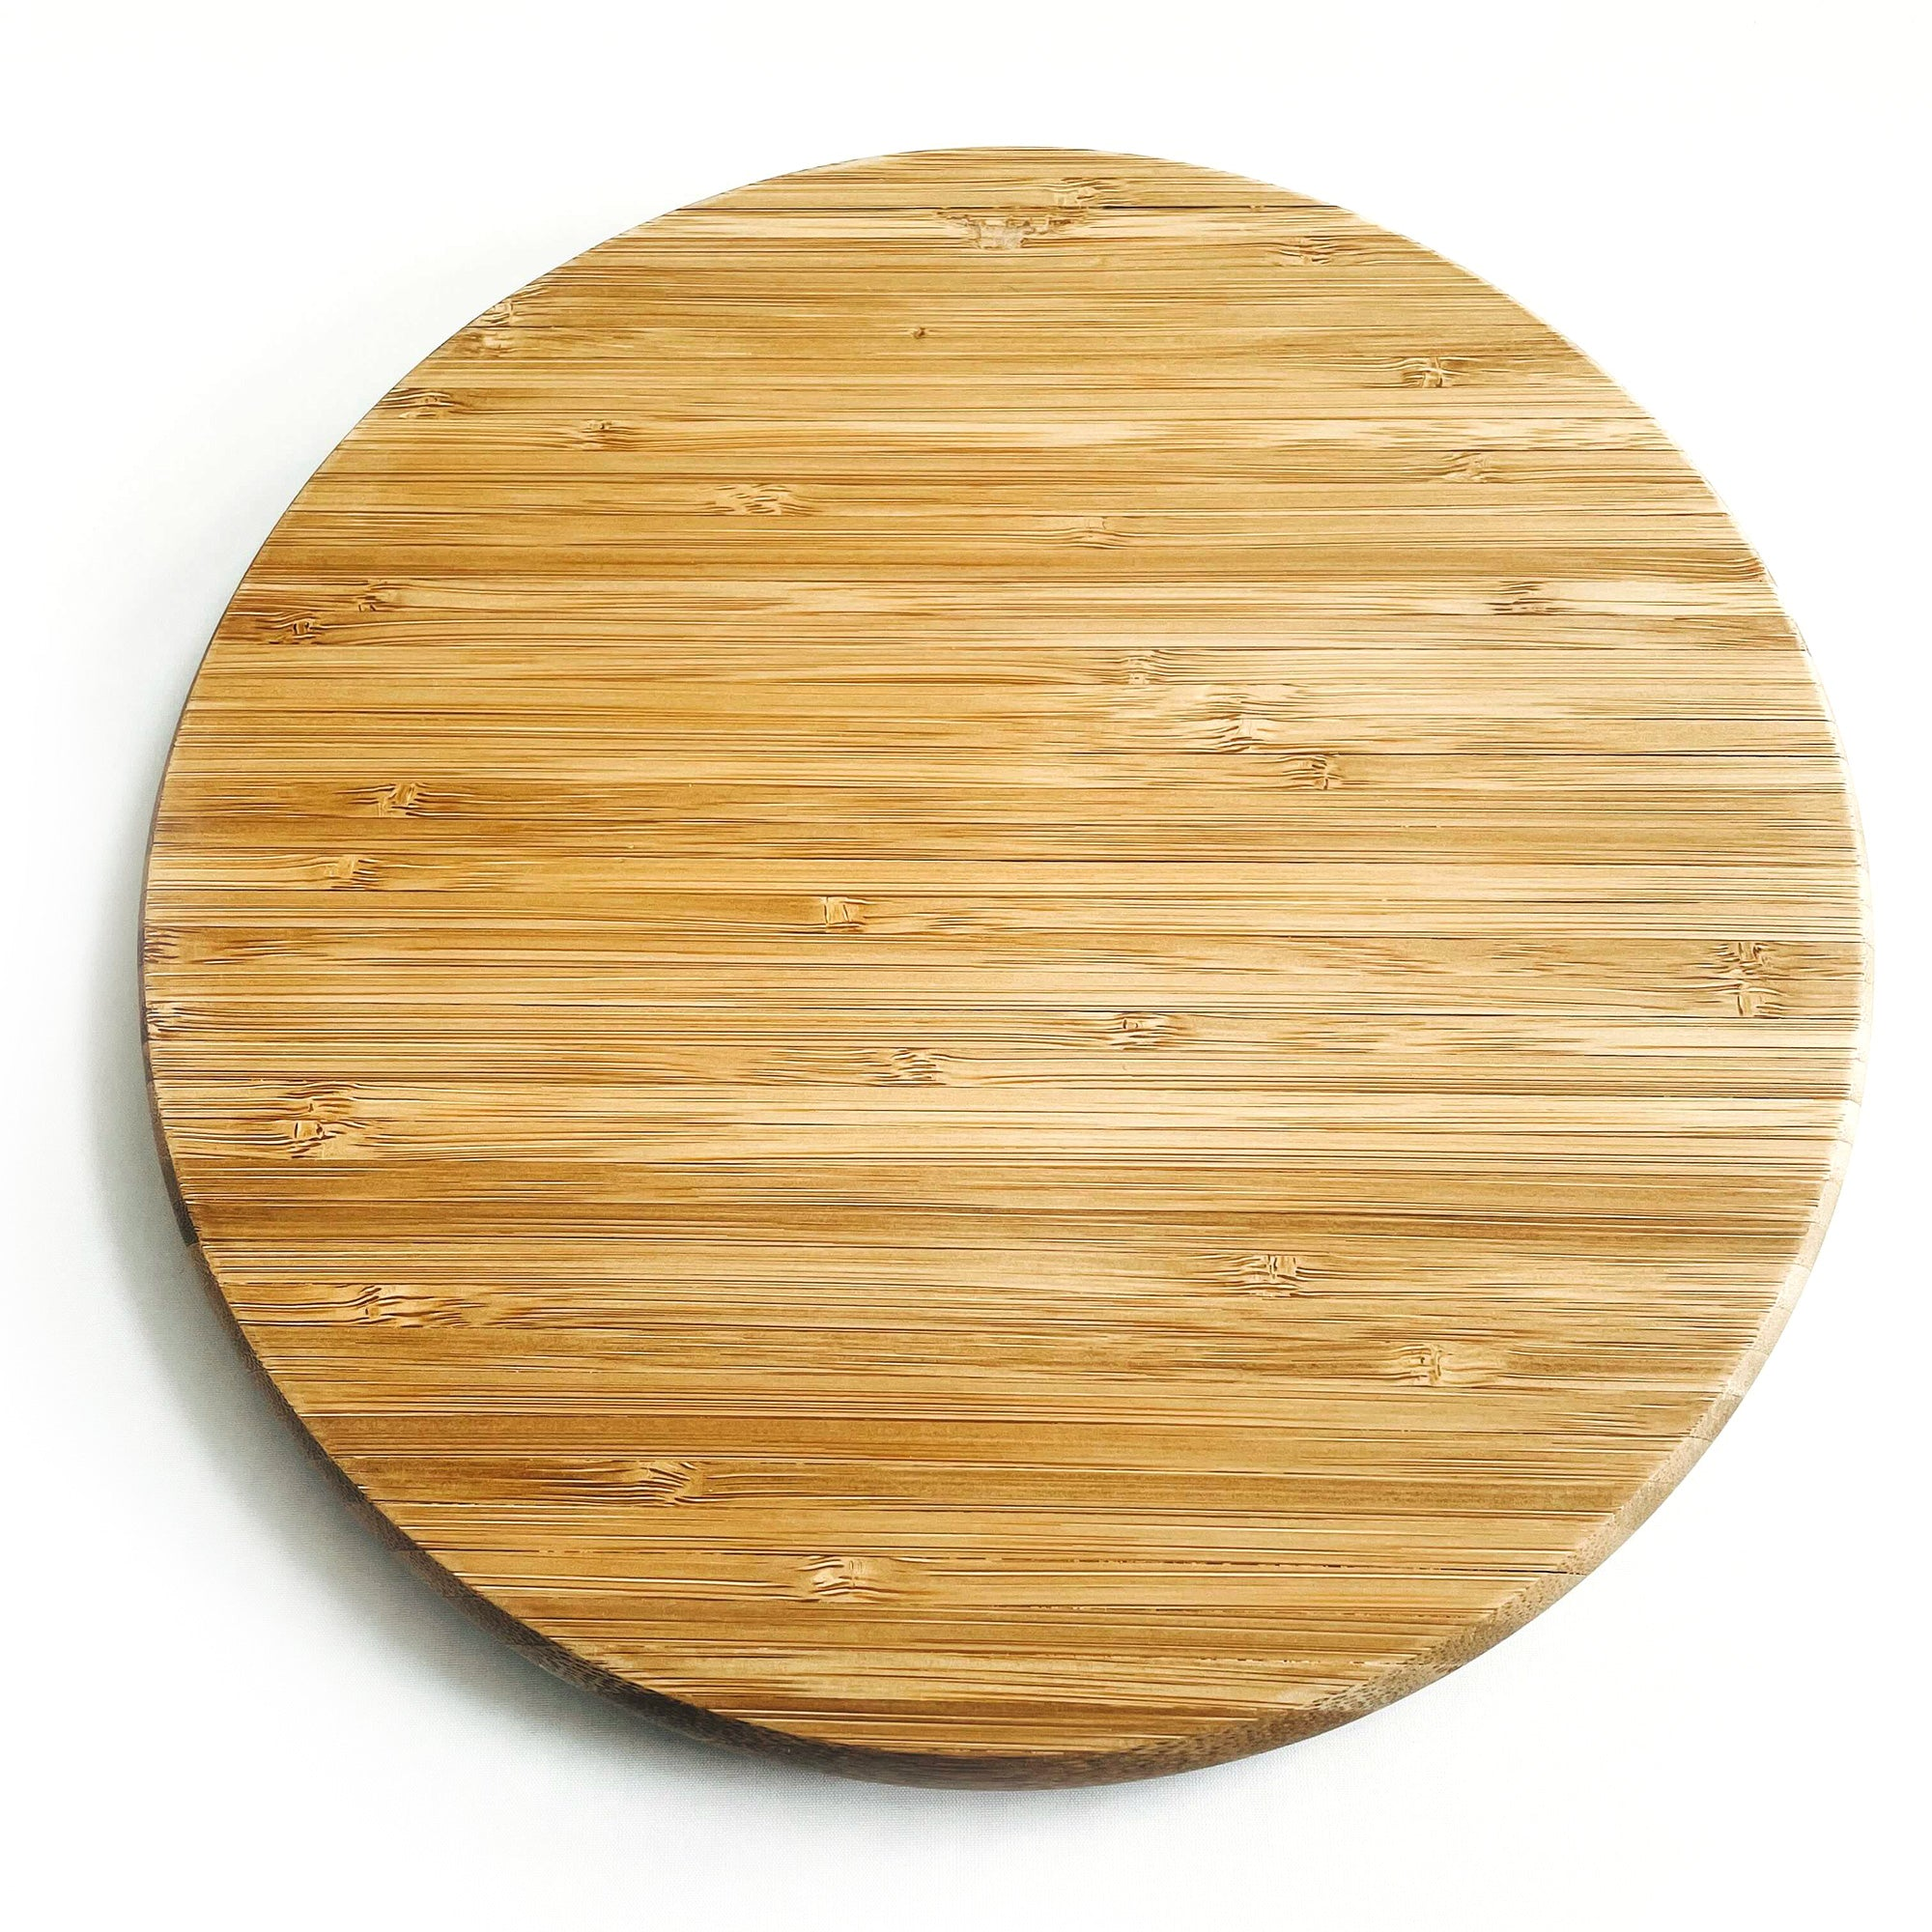 Single Handled Mezzaluna and Bamboo Board